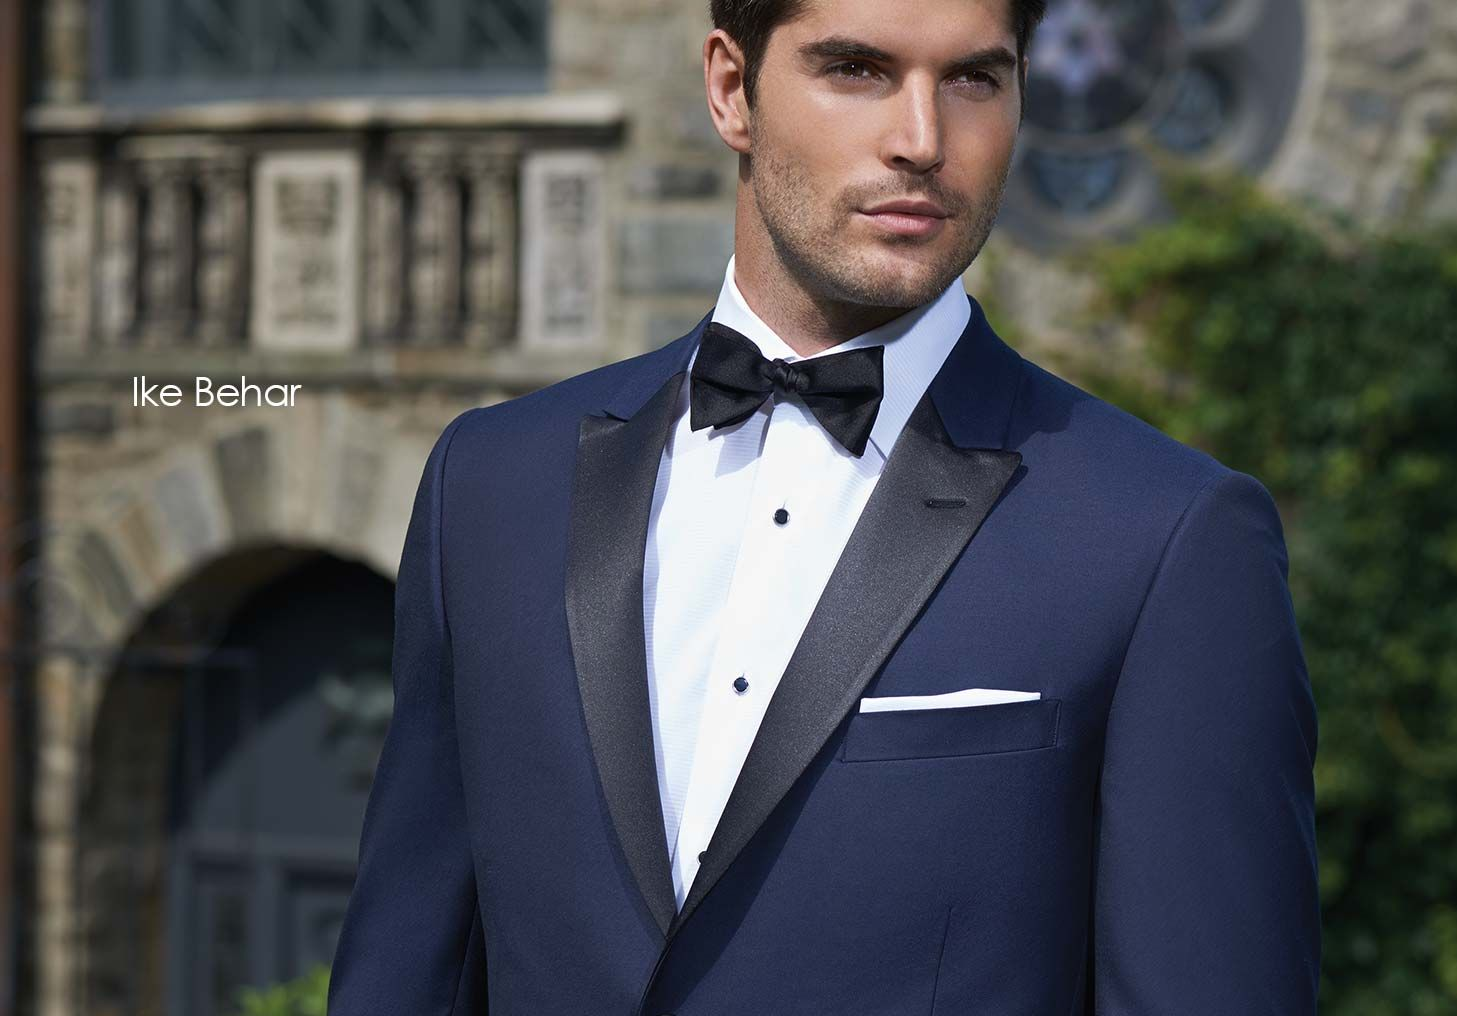 Men Tuxedo For Weddings Google Search